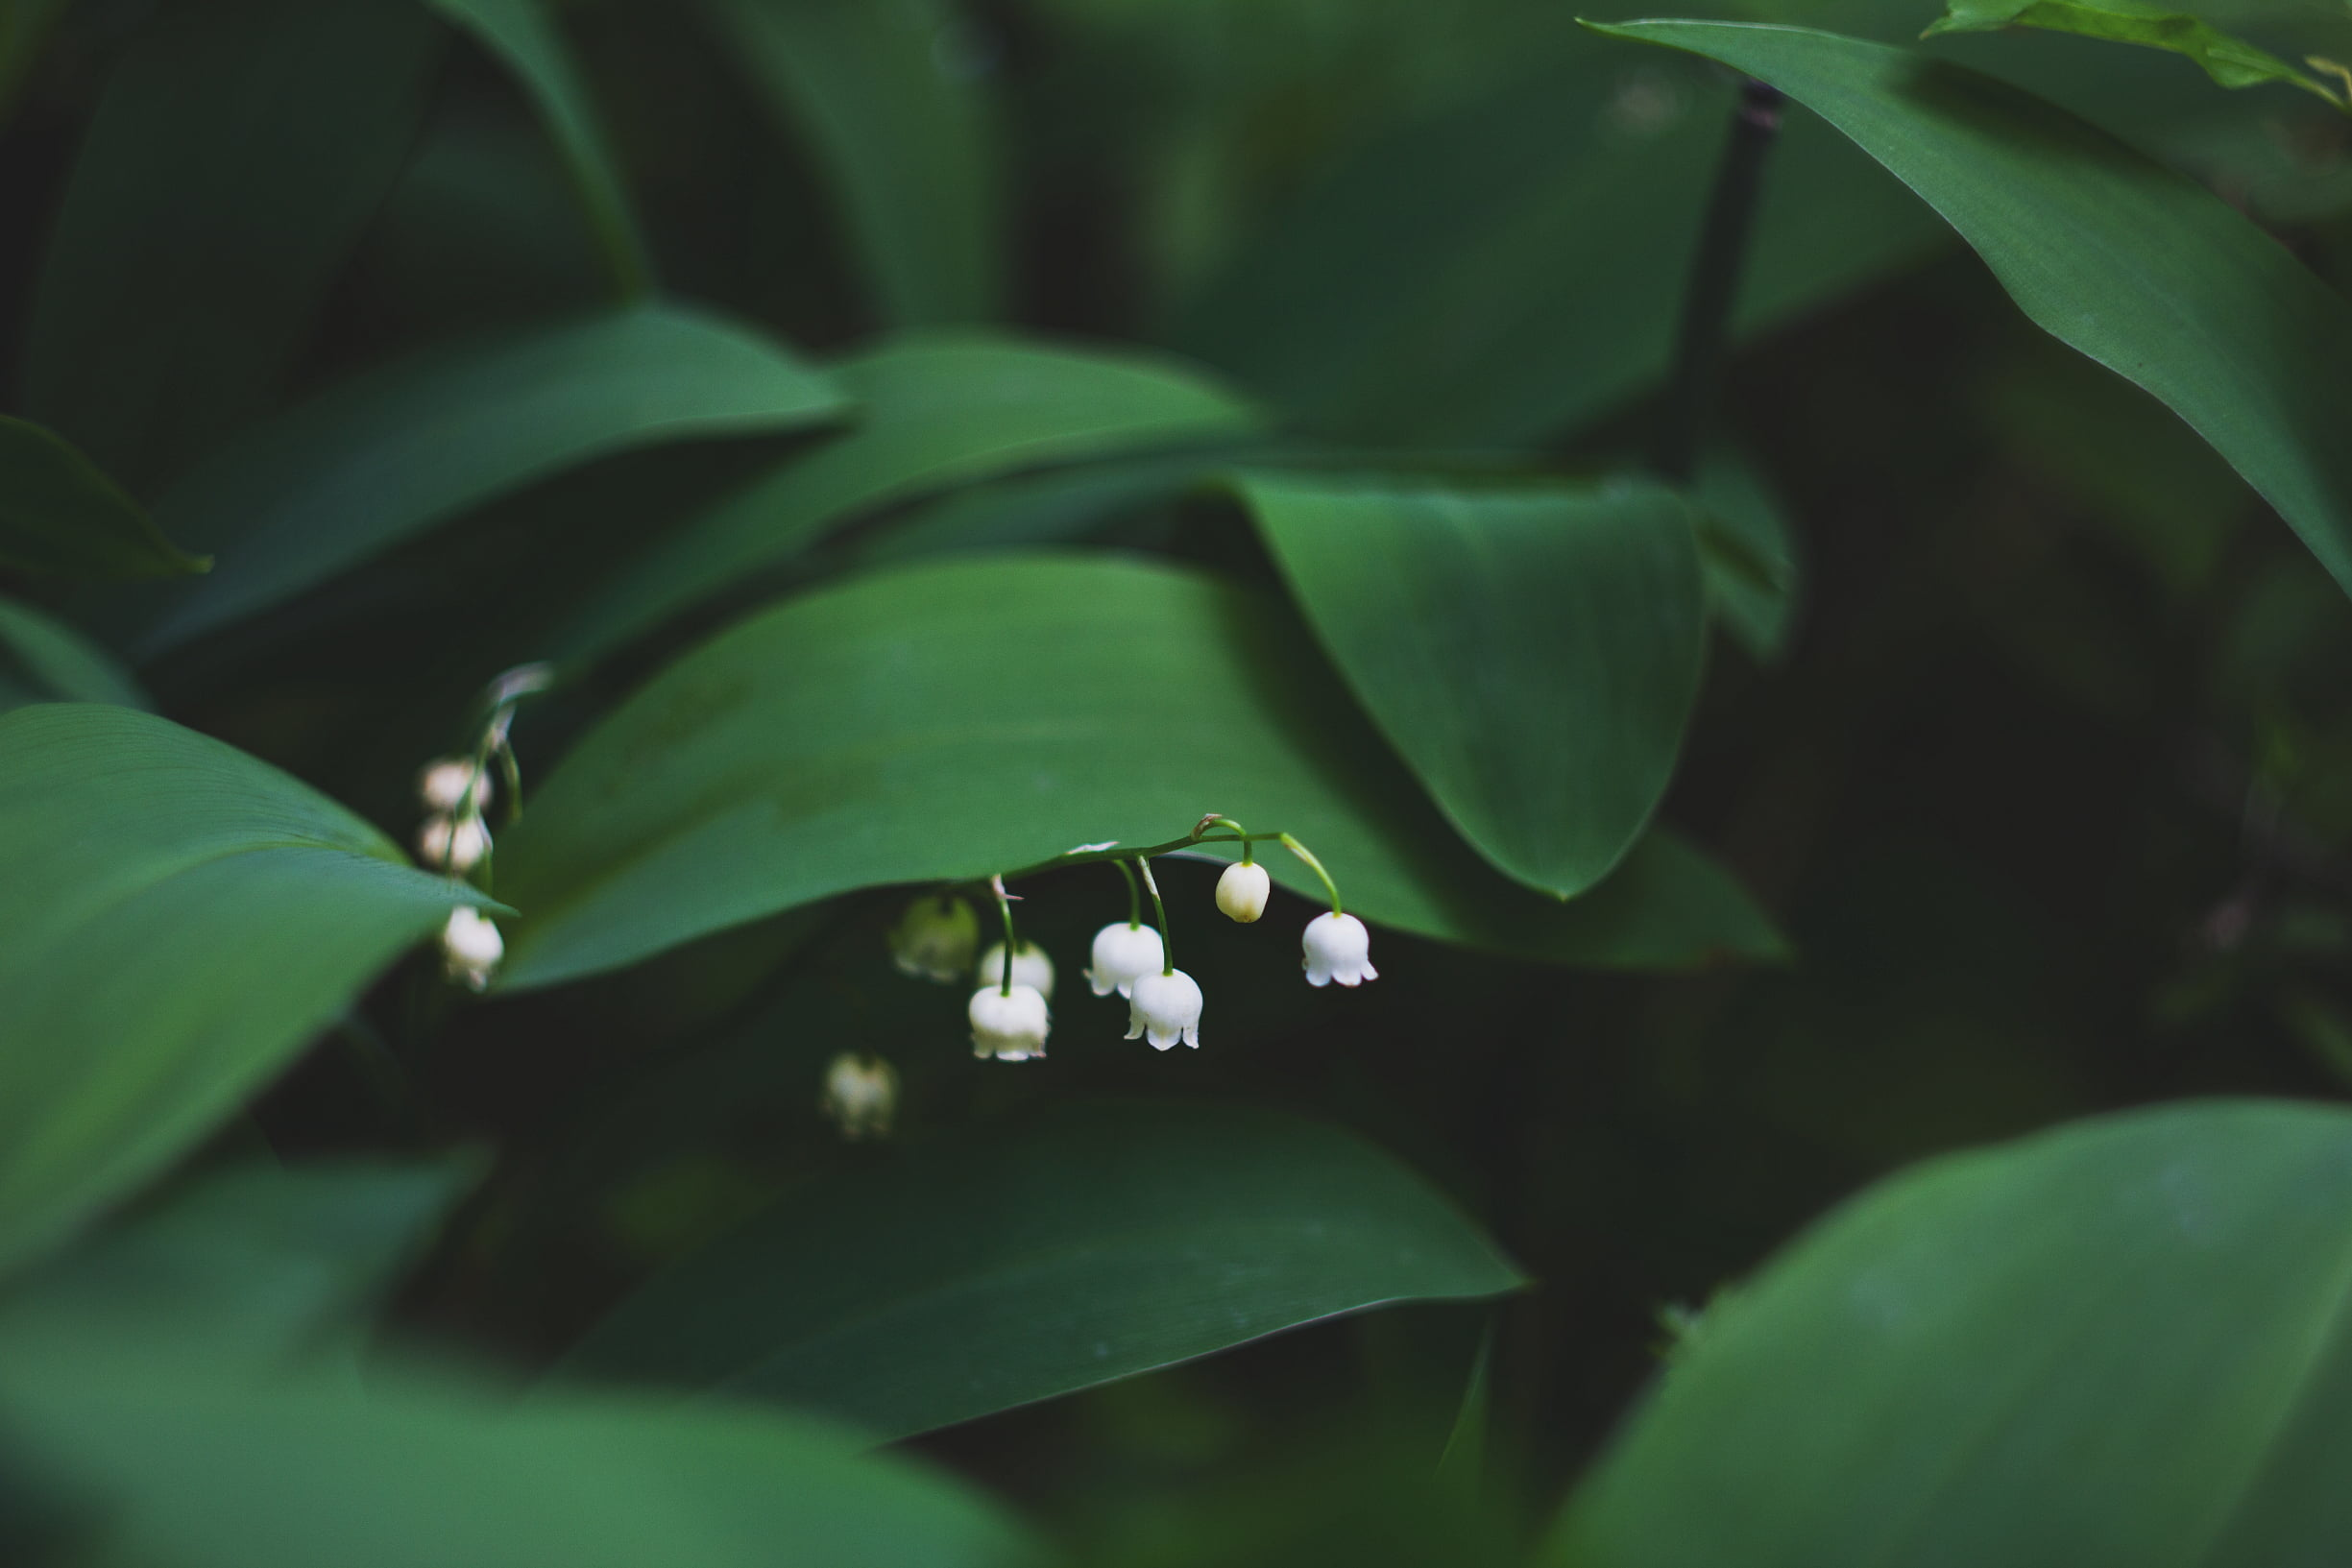 Iphone 2g Wallpaper For Iphone X Lily Of The Valley Hd Wallpaper Wallpaper Flare